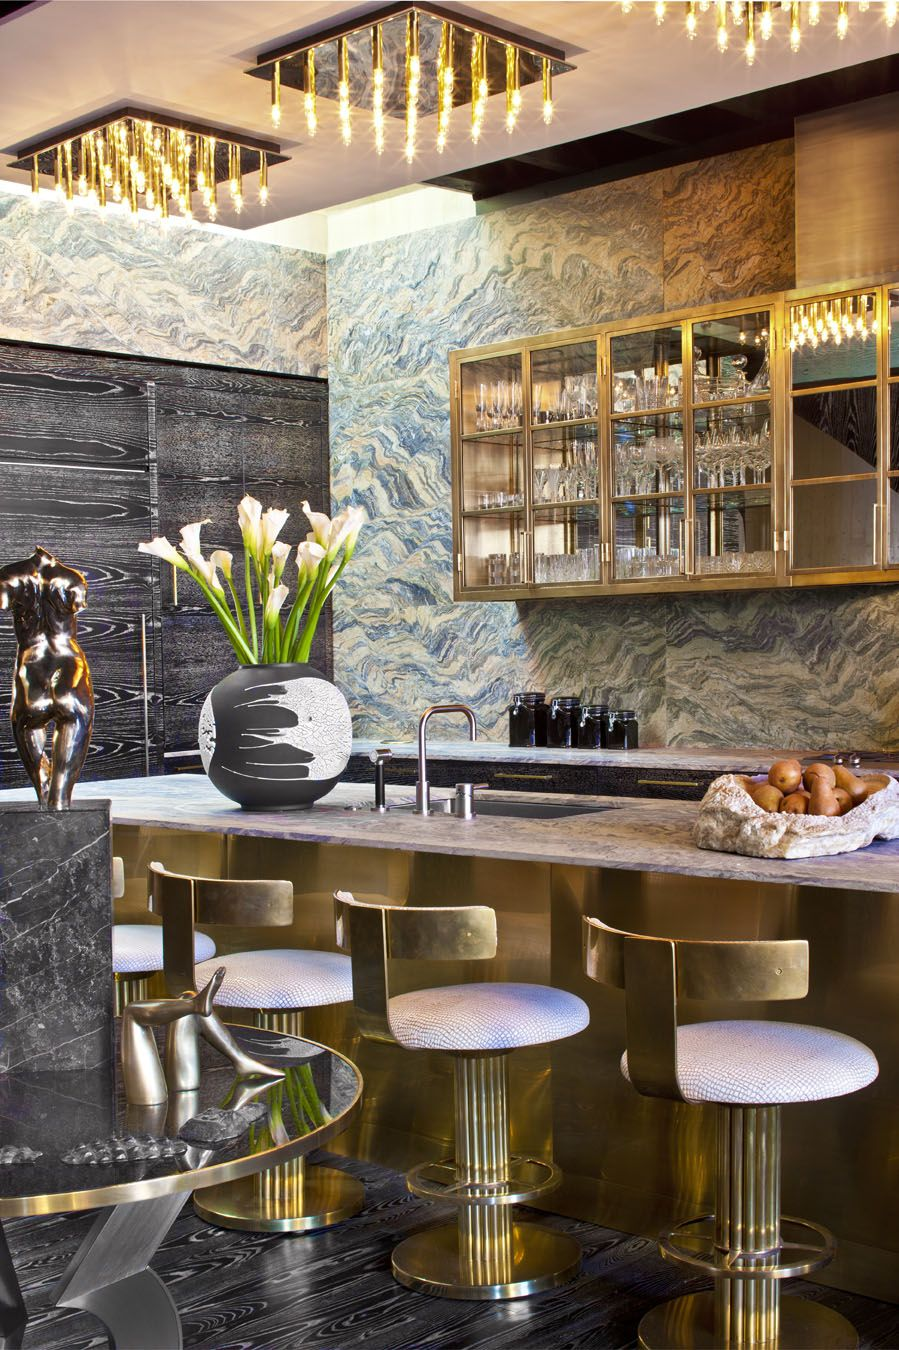 Elegant I Cannot Quite Express How Sophisticated And Simply Stunning This Is!! Bar  Area By